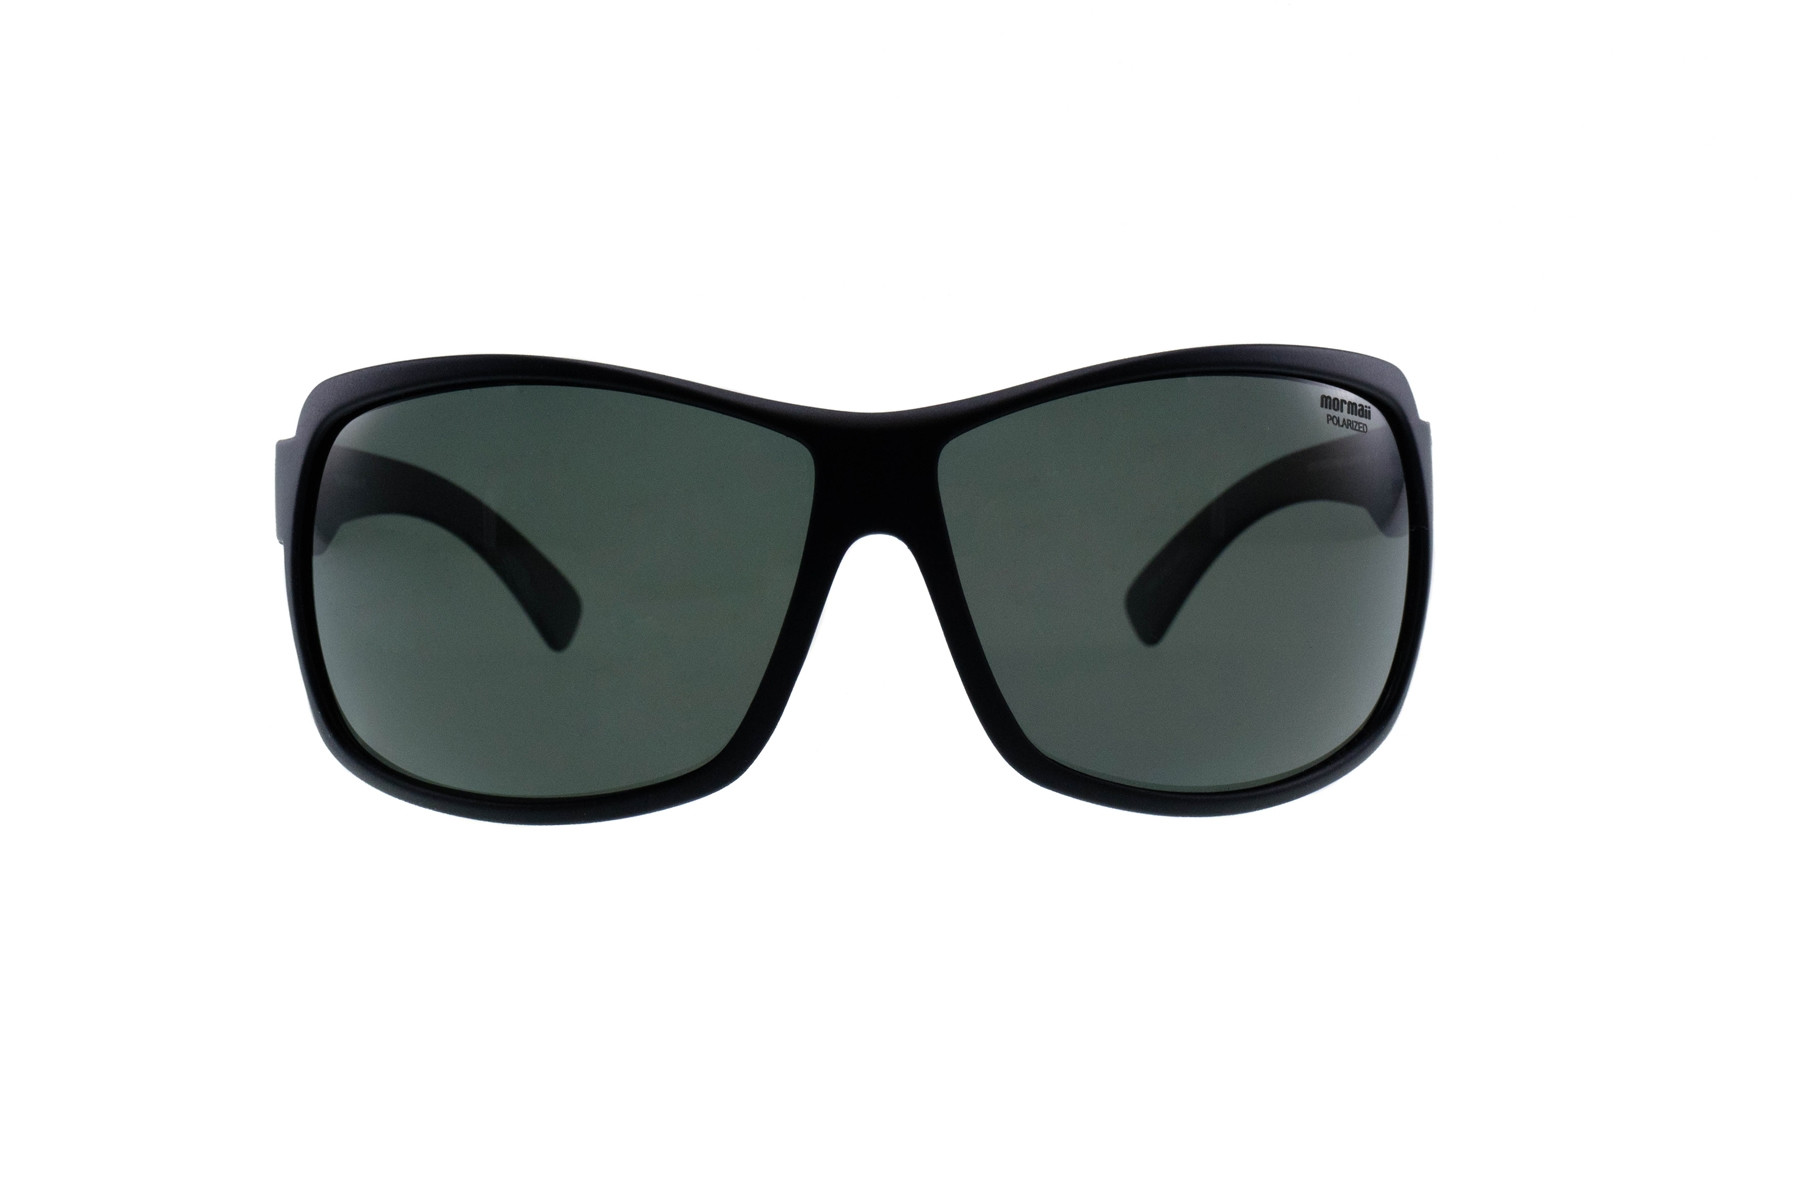 98e9230c4336d Optica Paesani - Lentes de Sol Mormaii The Wall NEgro polarizado